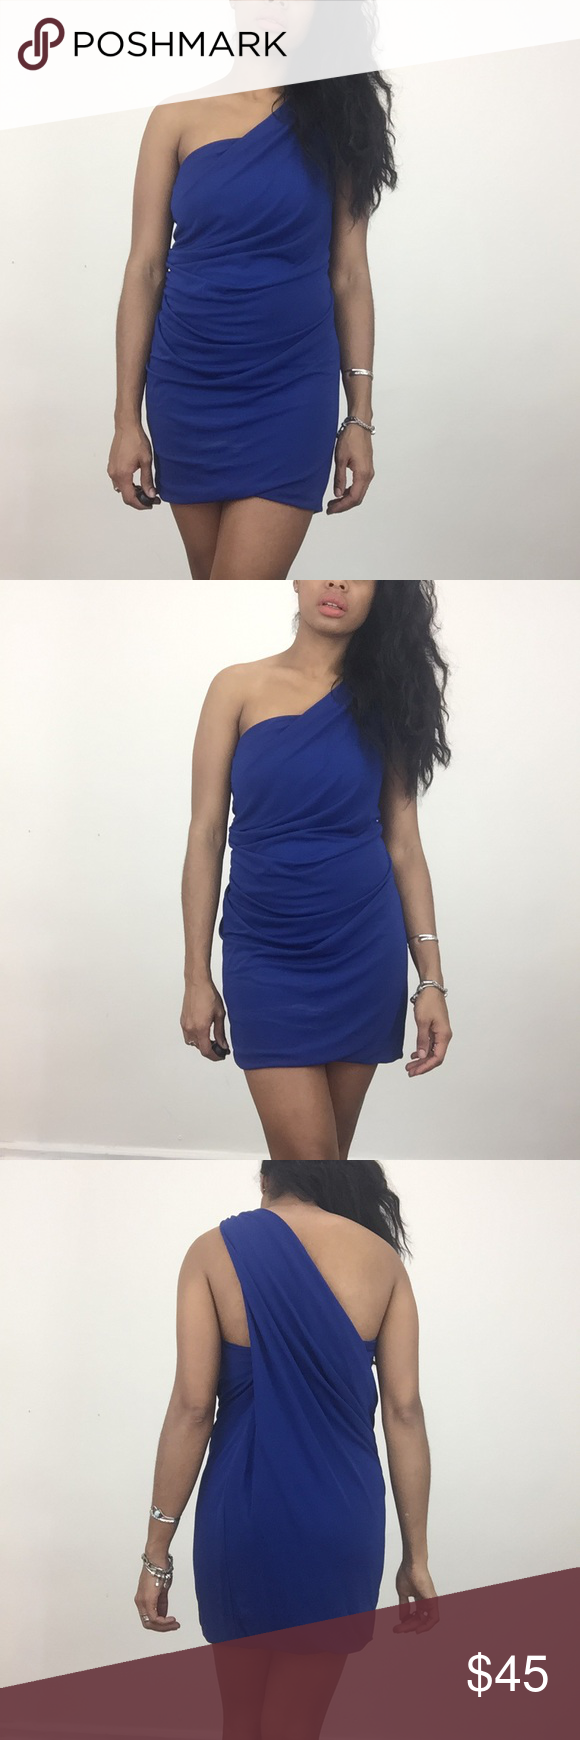 🌜Cut 25 One Shoulder Dress Beautiful electric blue one shoulder stretchy slip on dress. Size 0 fits sizev2,4 comfortably. Cut25 Dresses Mini